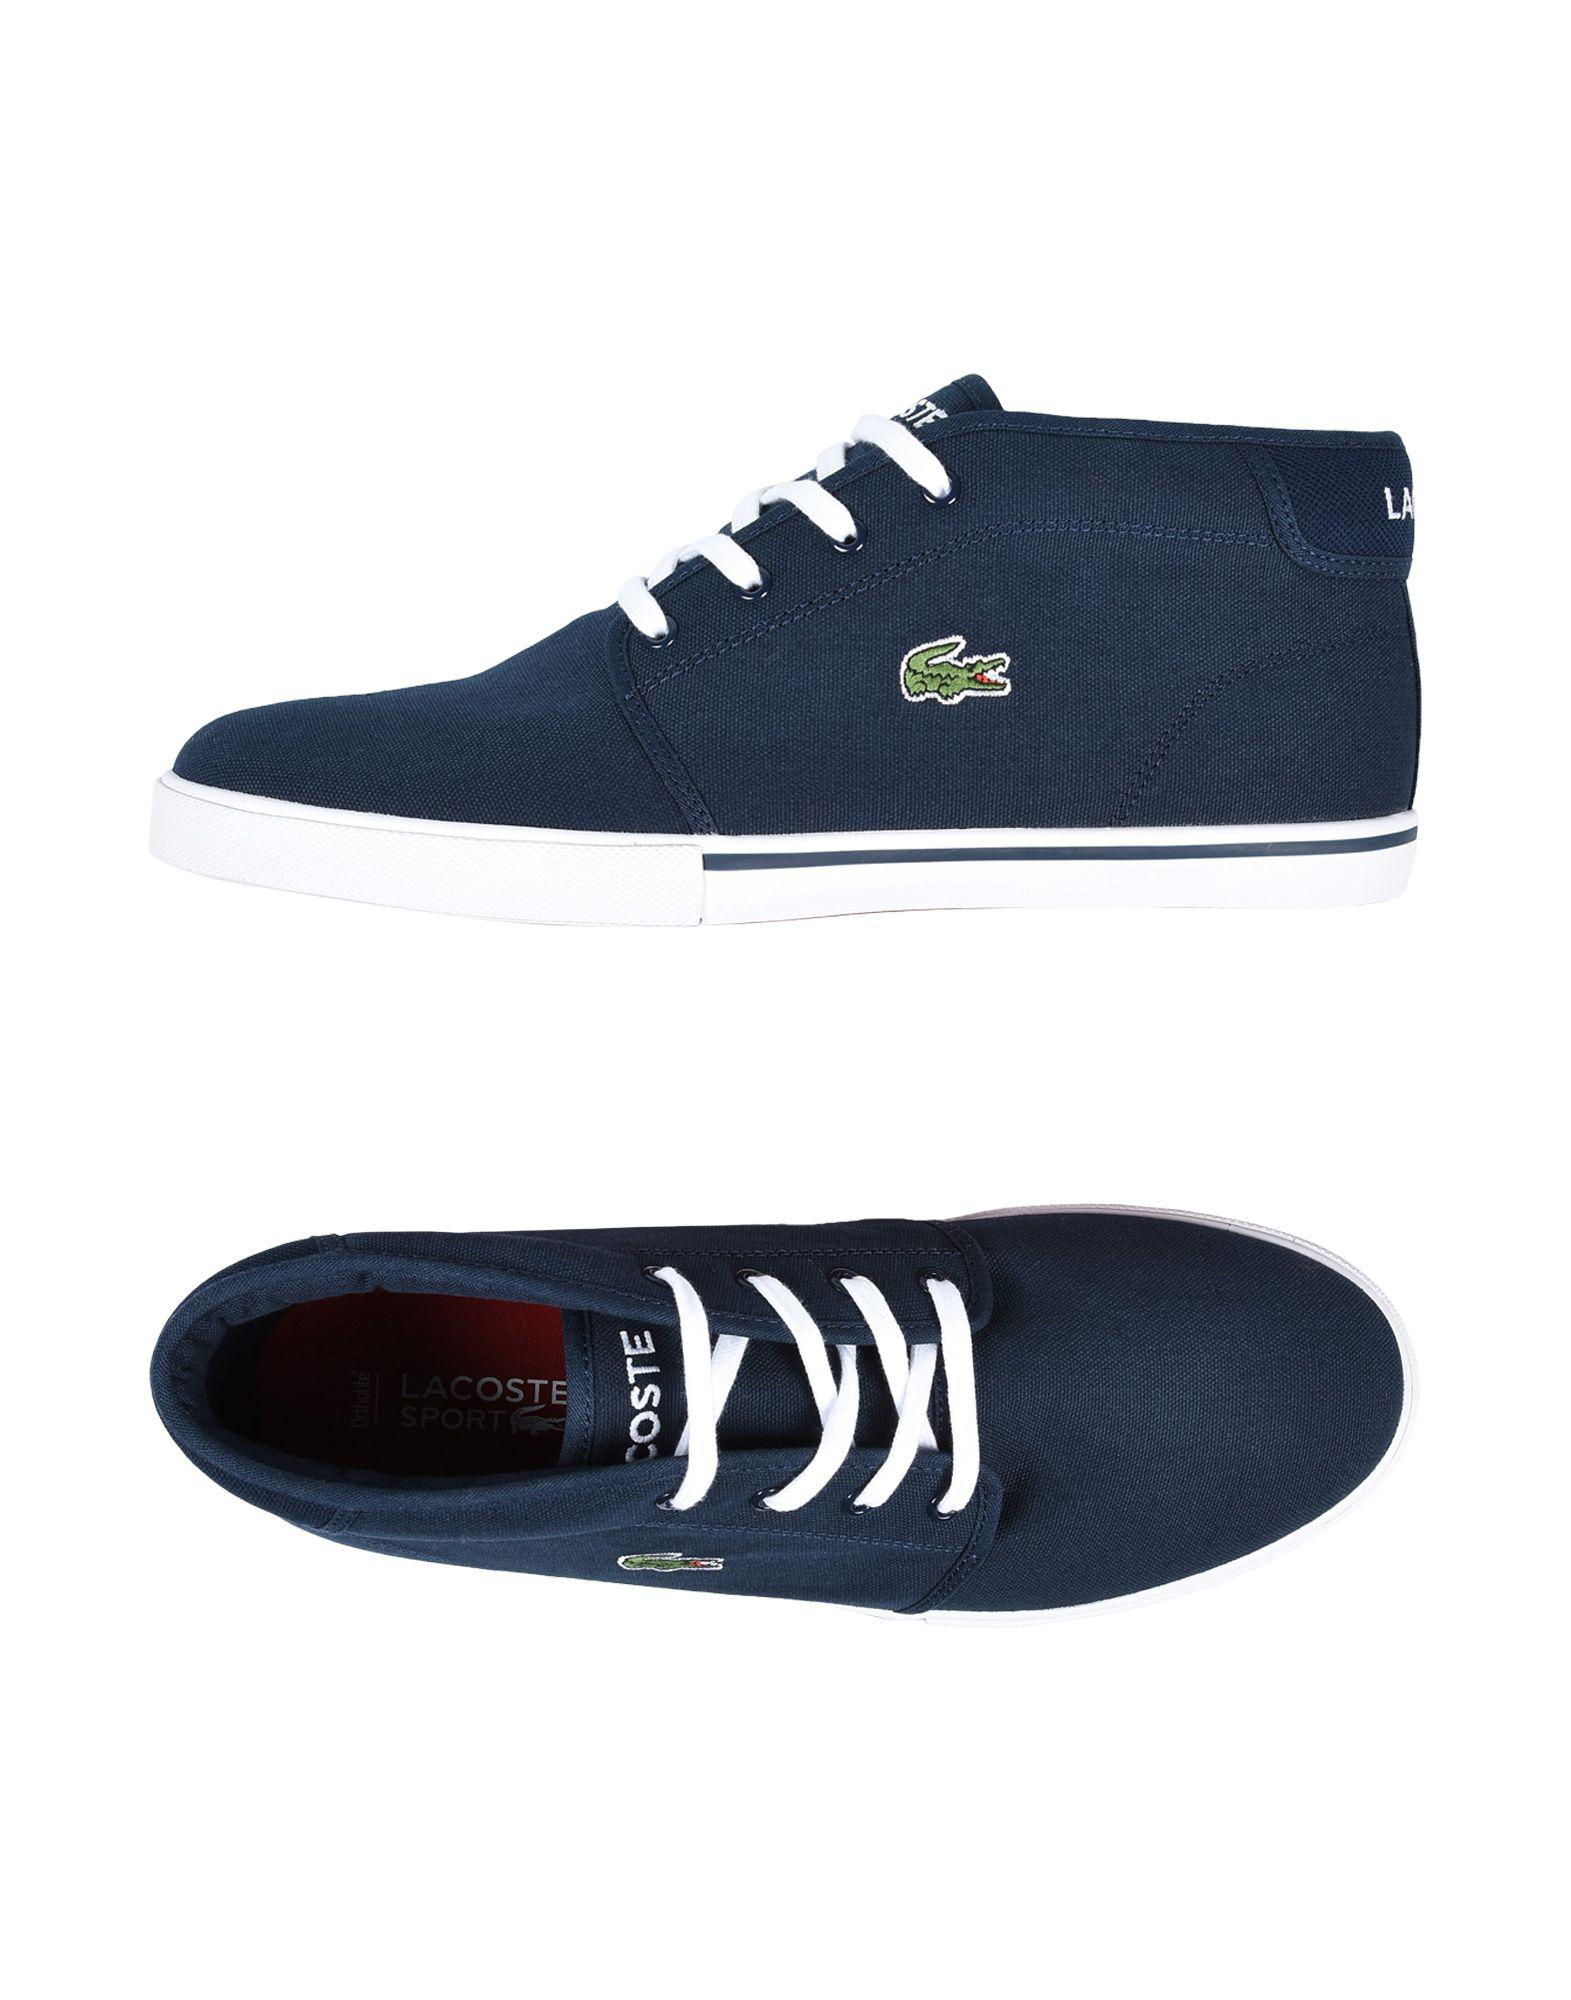 62dbc173e Lacoste Sport - Blue High-tops   Sneakers for Men - Lyst. View fullscreen